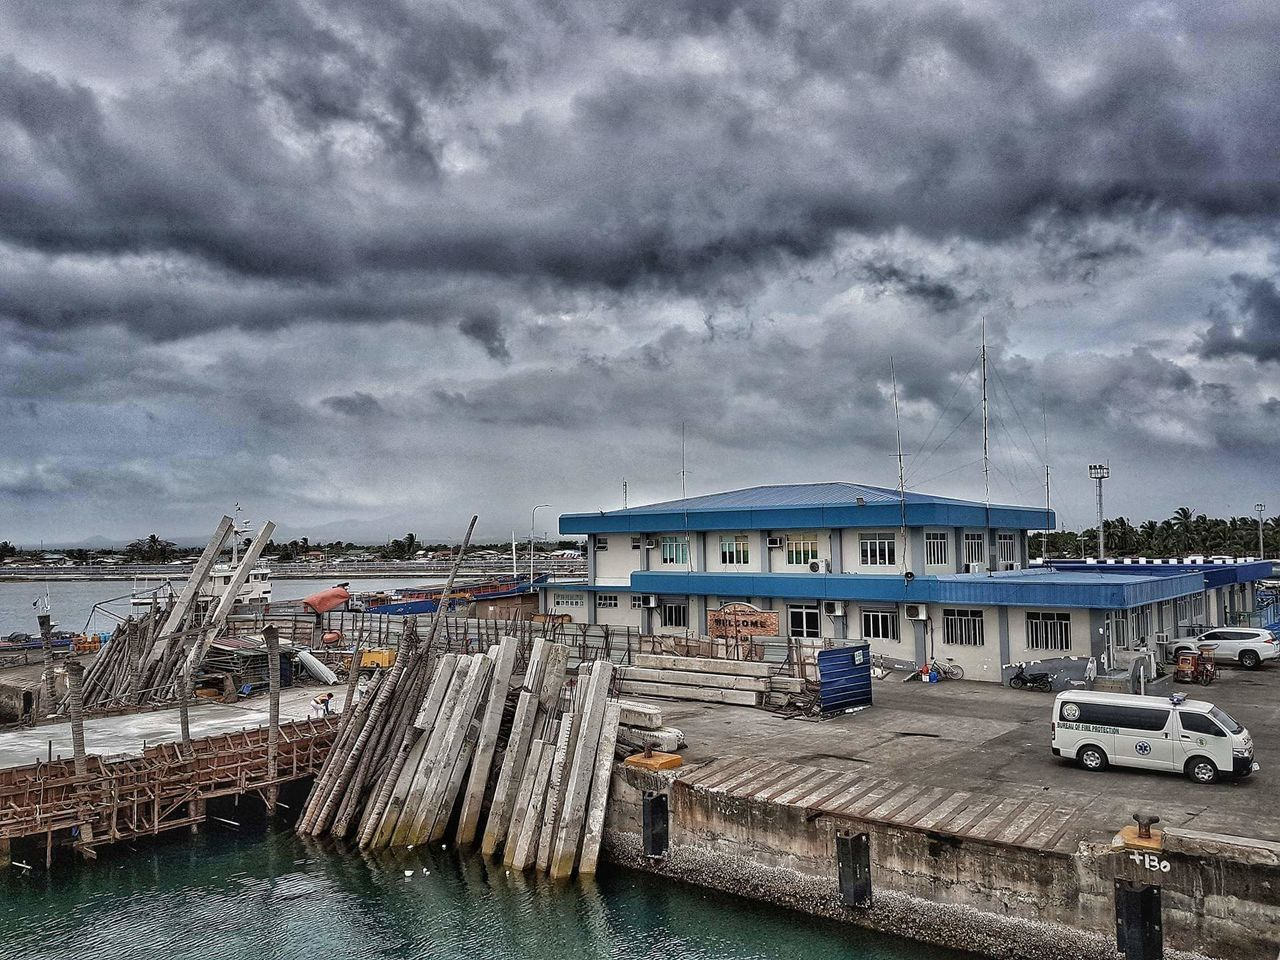 cloud - sky, mode of transport, sky, transportation, nautical vessel, built structure, architecture, building exterior, water, day, outdoors, no people, moored, sea, harbor, nature, commercial dock, storm cloud, city